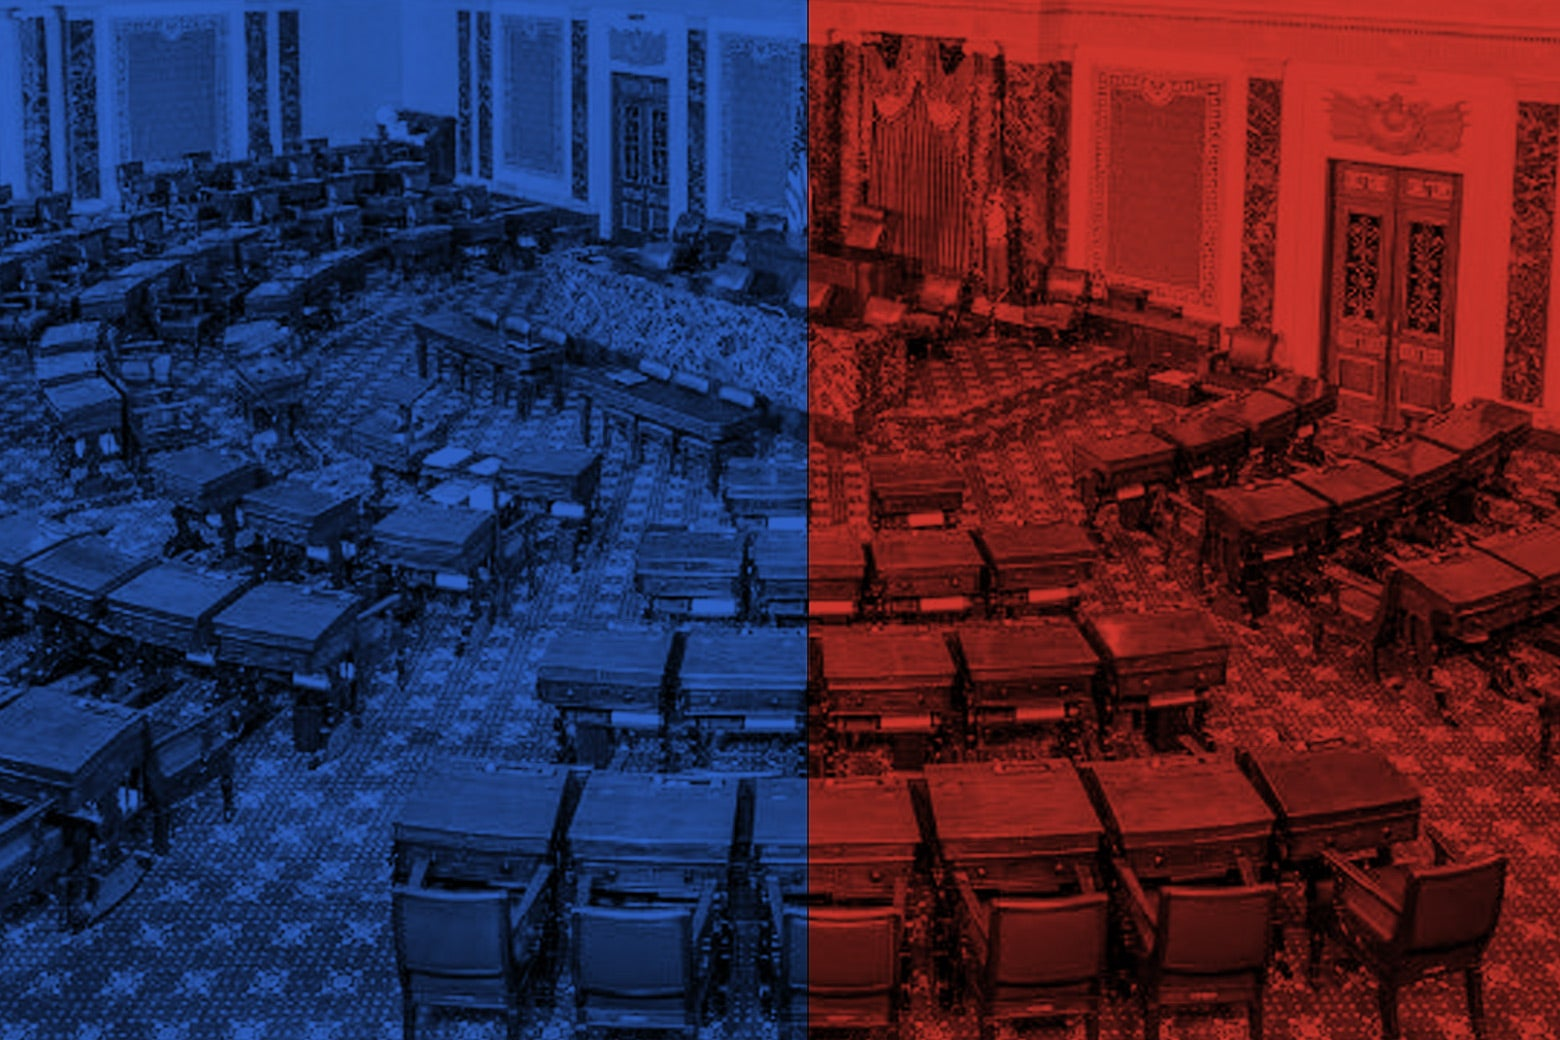 The Senate chamber colored half red and half blue.